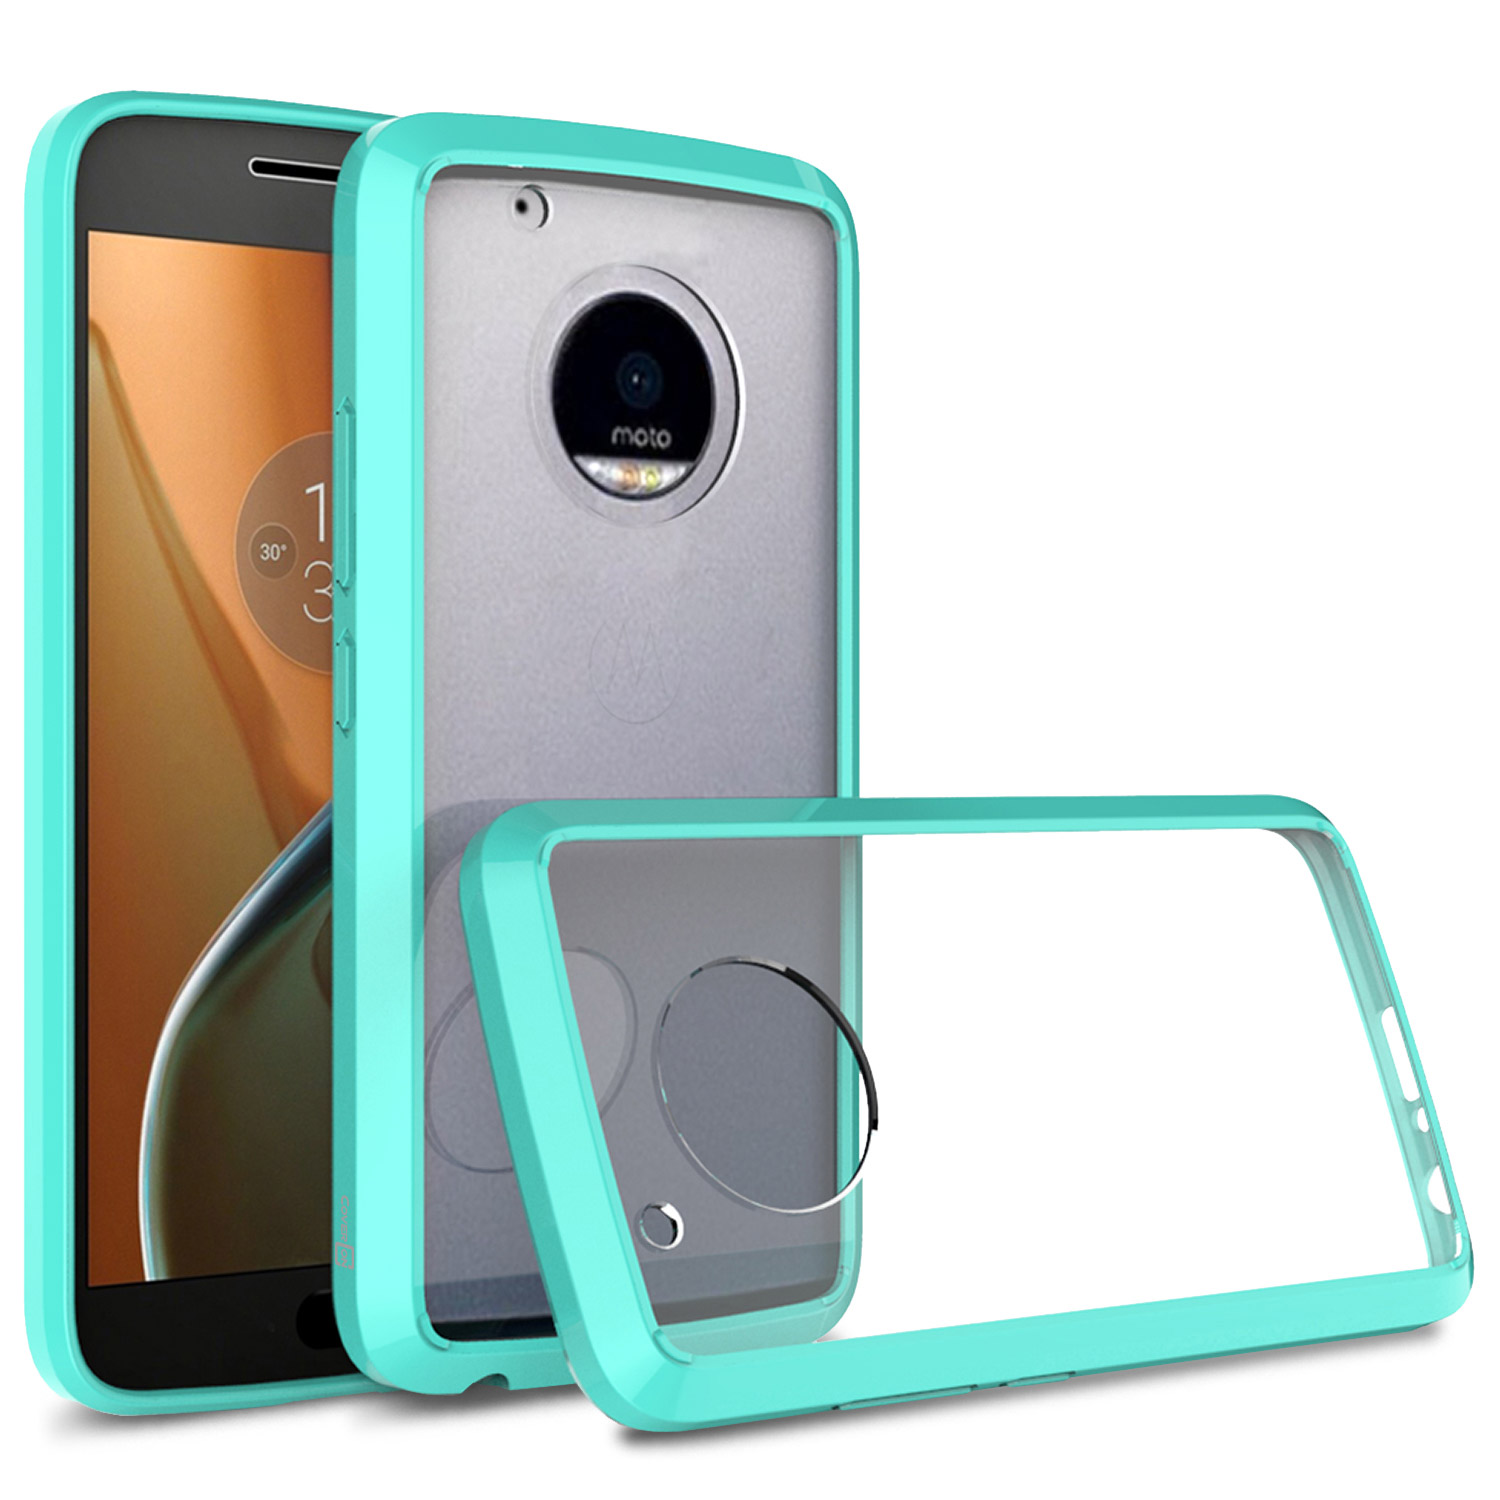 brand new 234fb 97cc3 Details about Slim Fit Back Cover Case For Motorola Moto G5 Plus / Moto X  2017 Teal / Clear